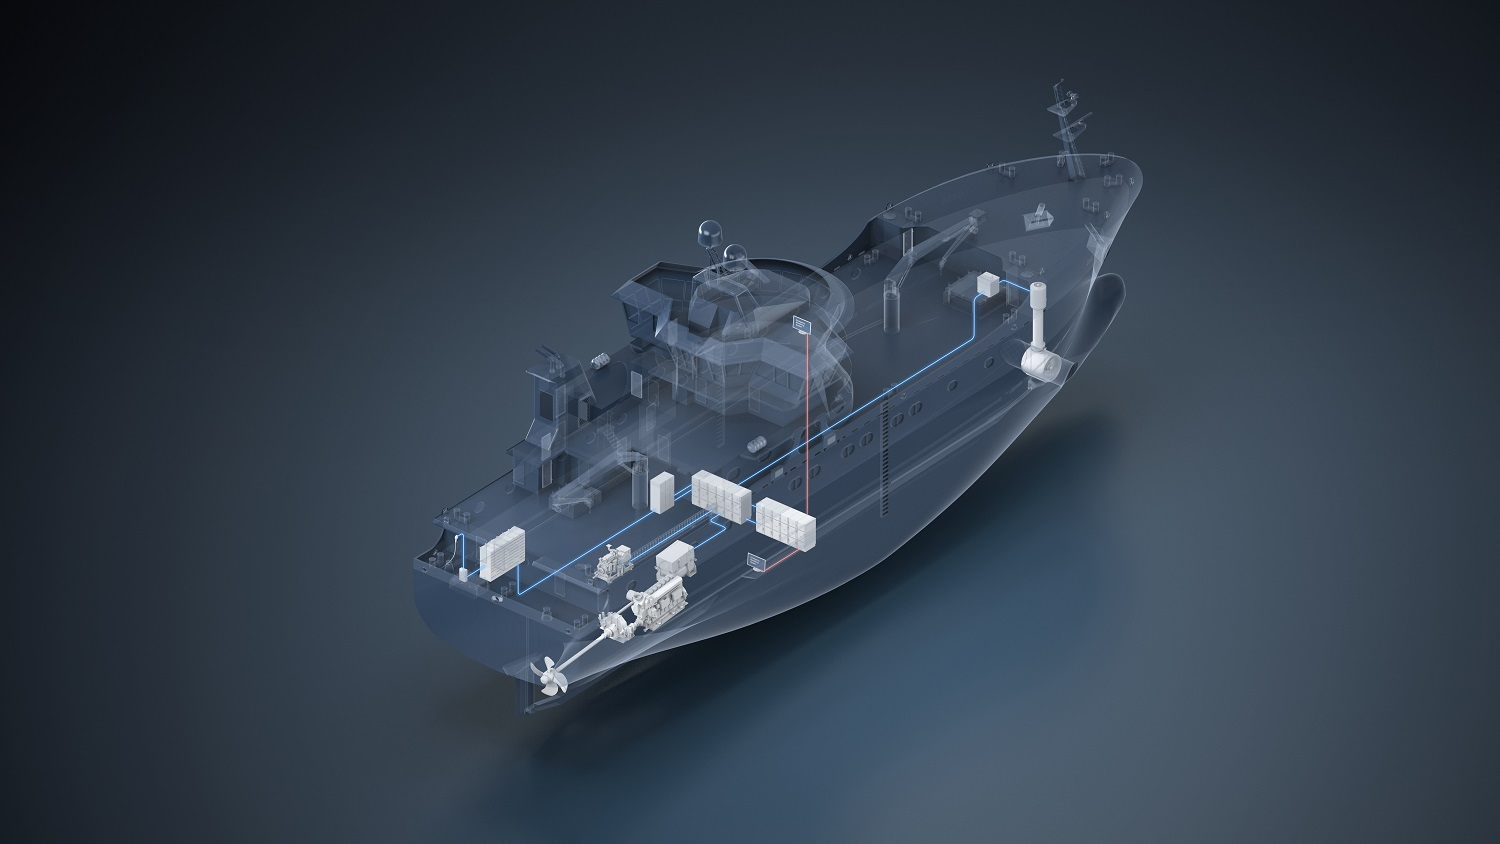 Høglund Power Solutions - Hybrid Propulsion System on the new longliner fishing vessel MS Geir